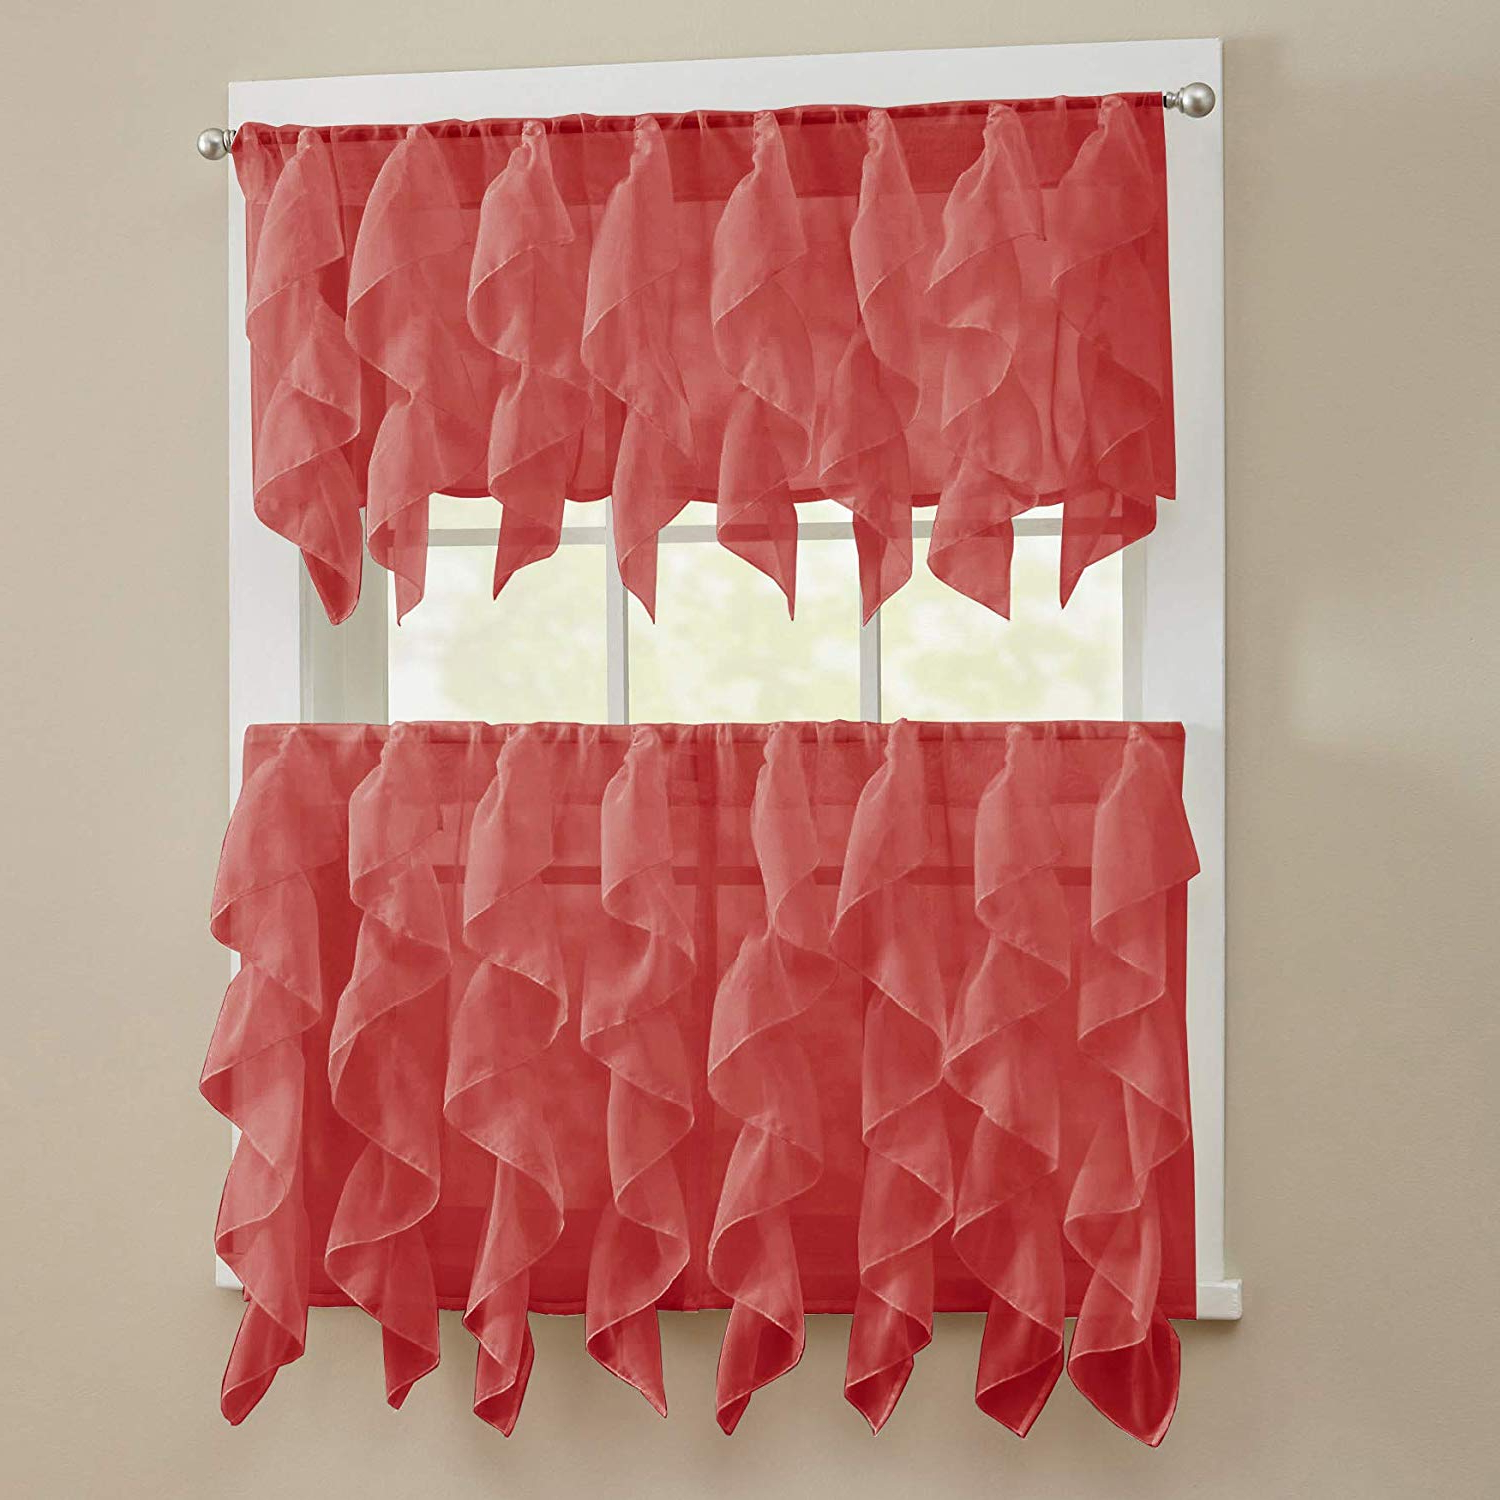 "Most Recent Silver Vertical Ruffled Waterfall Valance And Curtain Tiers Intended For Sweet Home Collection 3 Piece Kitchen Curtain Set Sheet Vertical Cascading Waterfall Ruffle Includes Valance & Choice Of 24"" Or 36"" Teir Pair, Tier, (View 11 of 20)"